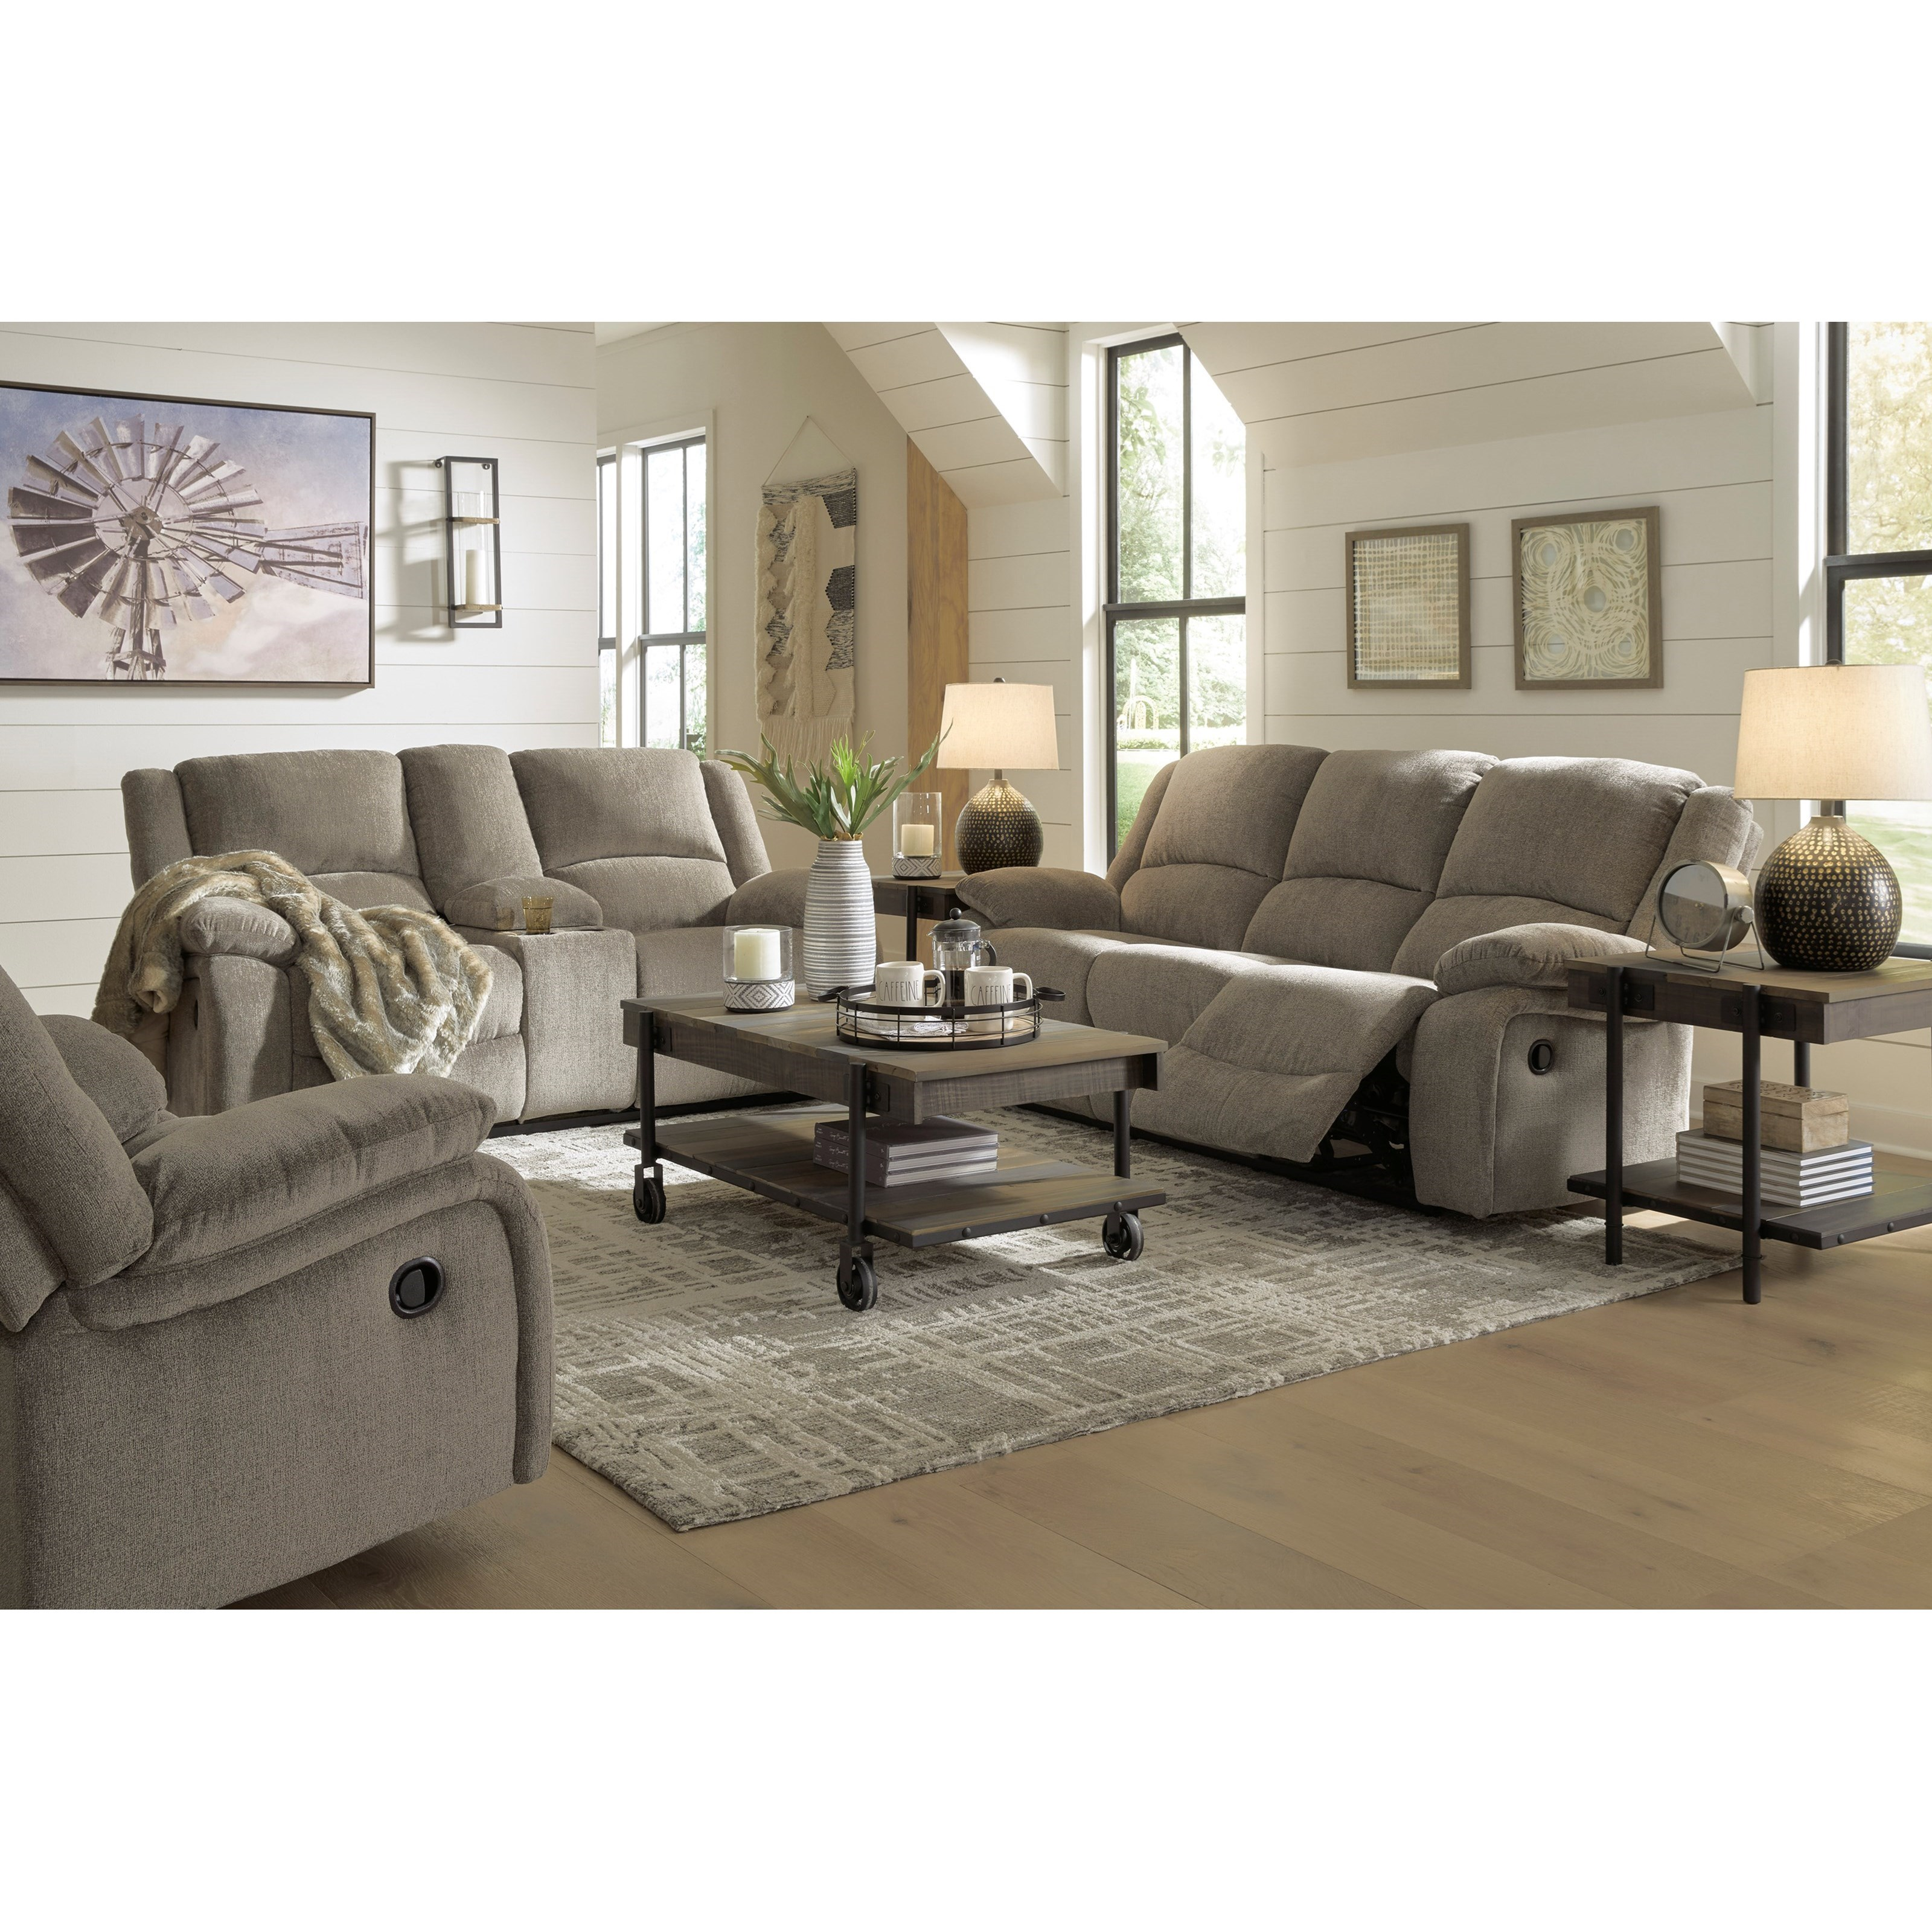 Draycoll Reclining Living Room Group by Ashley (Signature Design) at Johnny Janosik